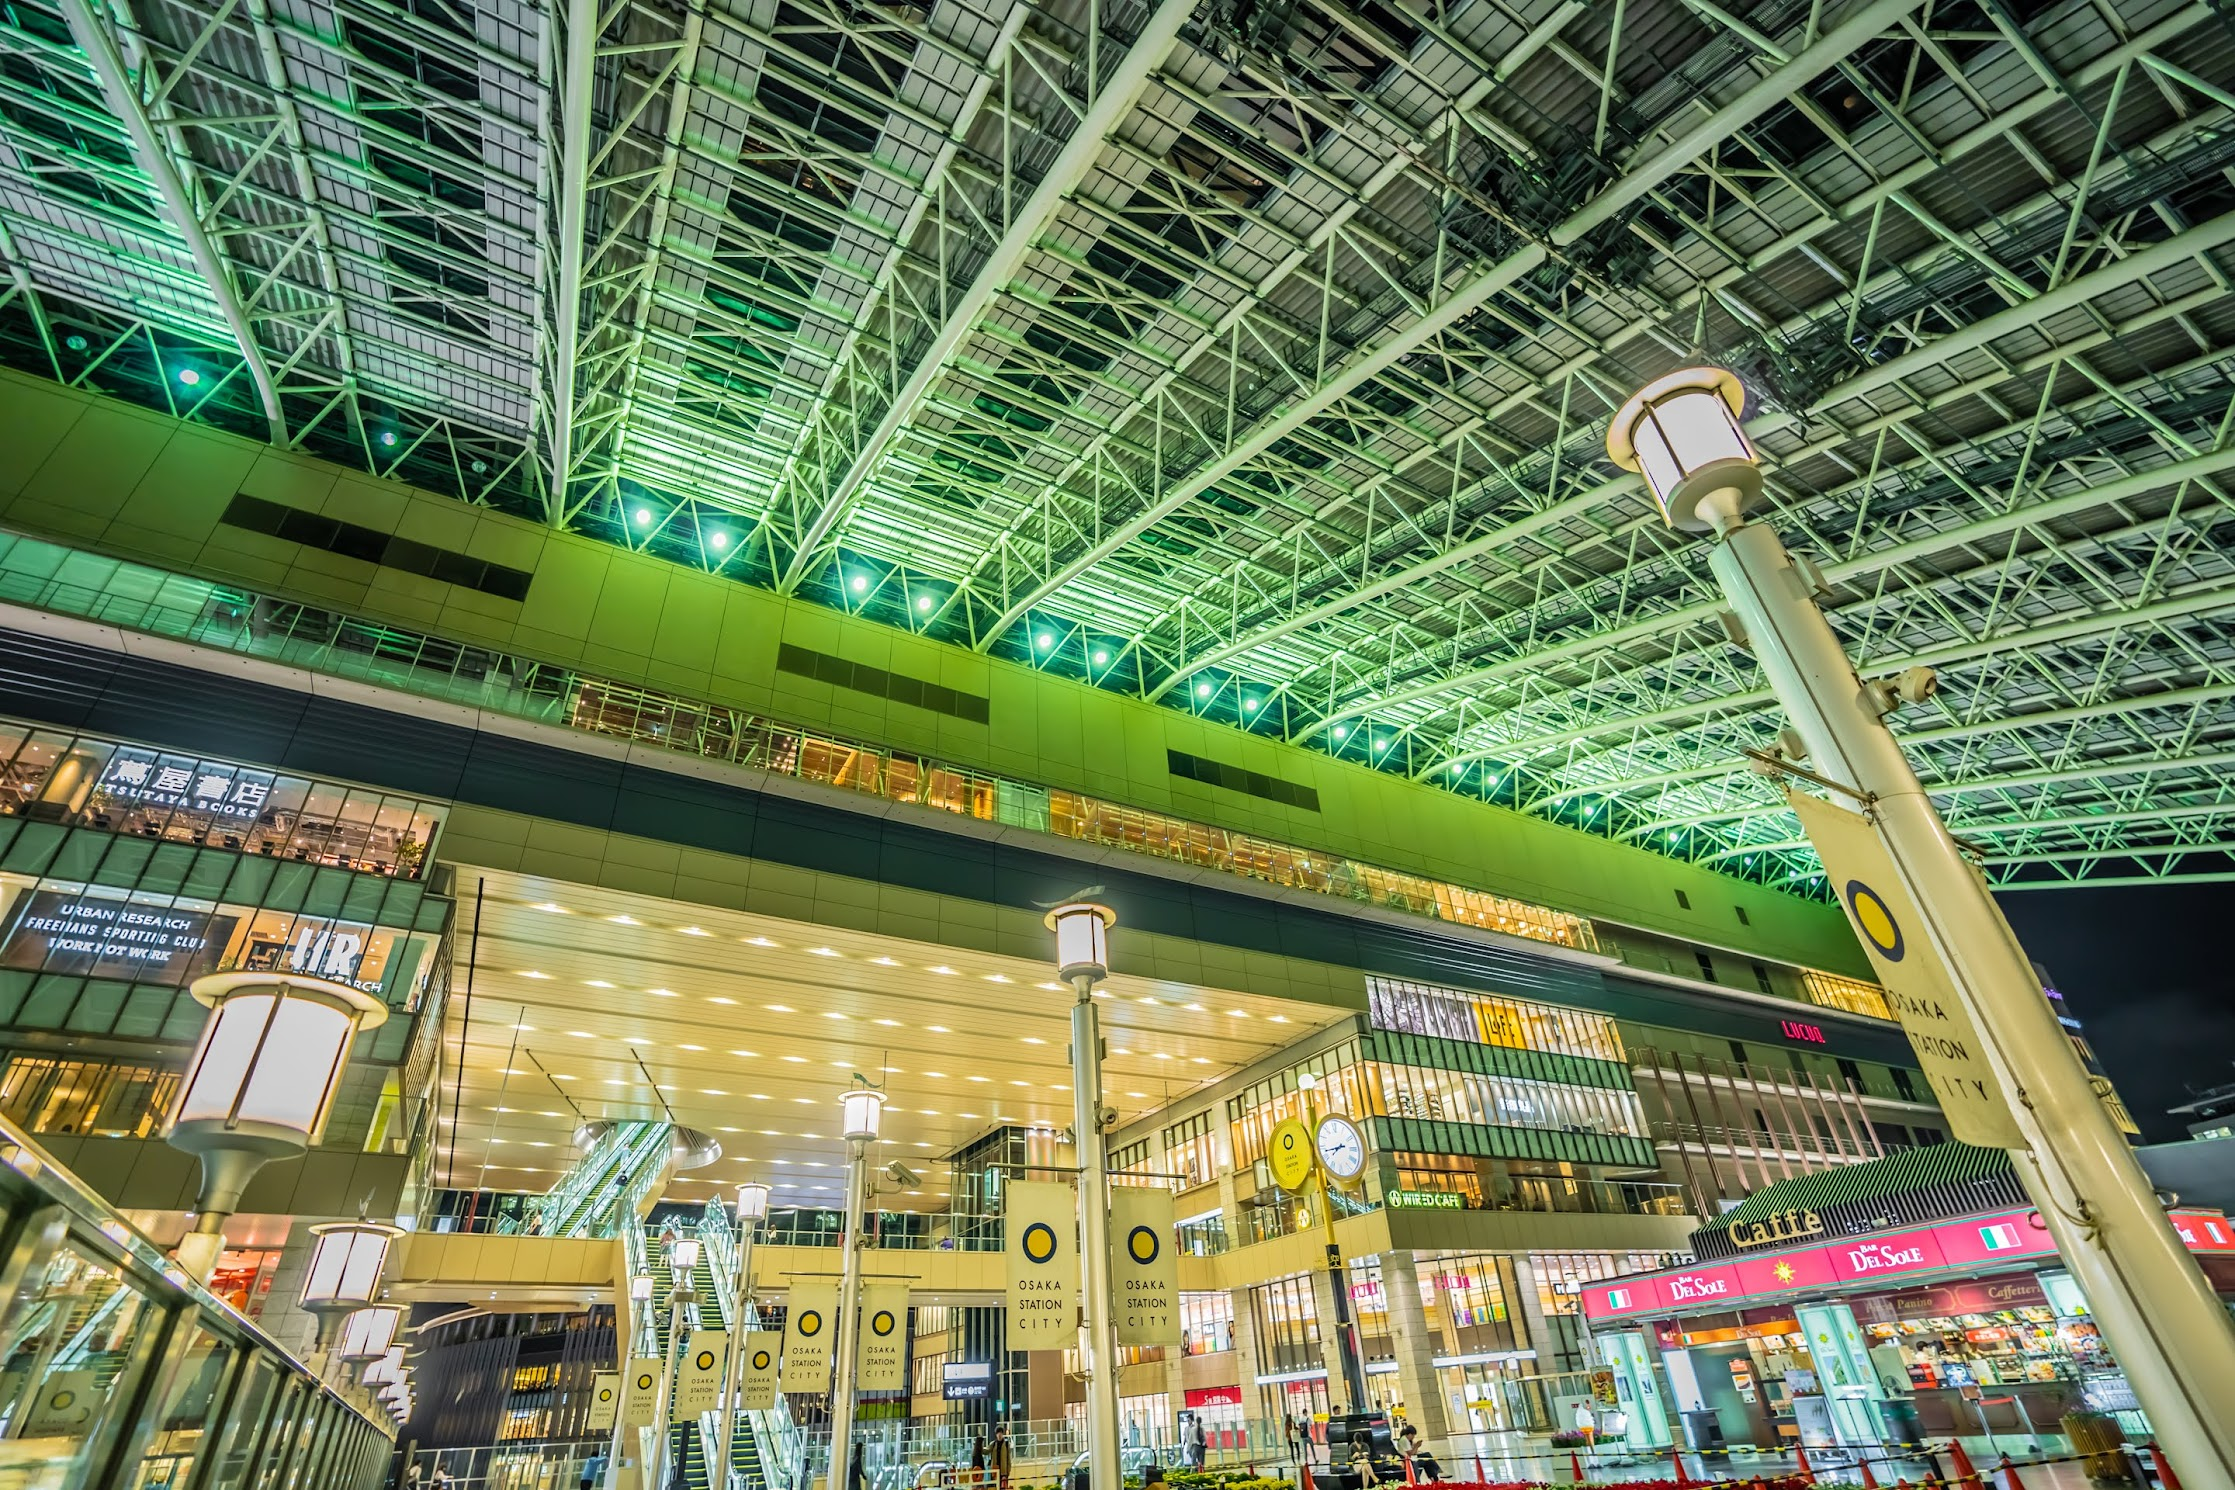 Osaka station Toki-no-hiroba Plaza3